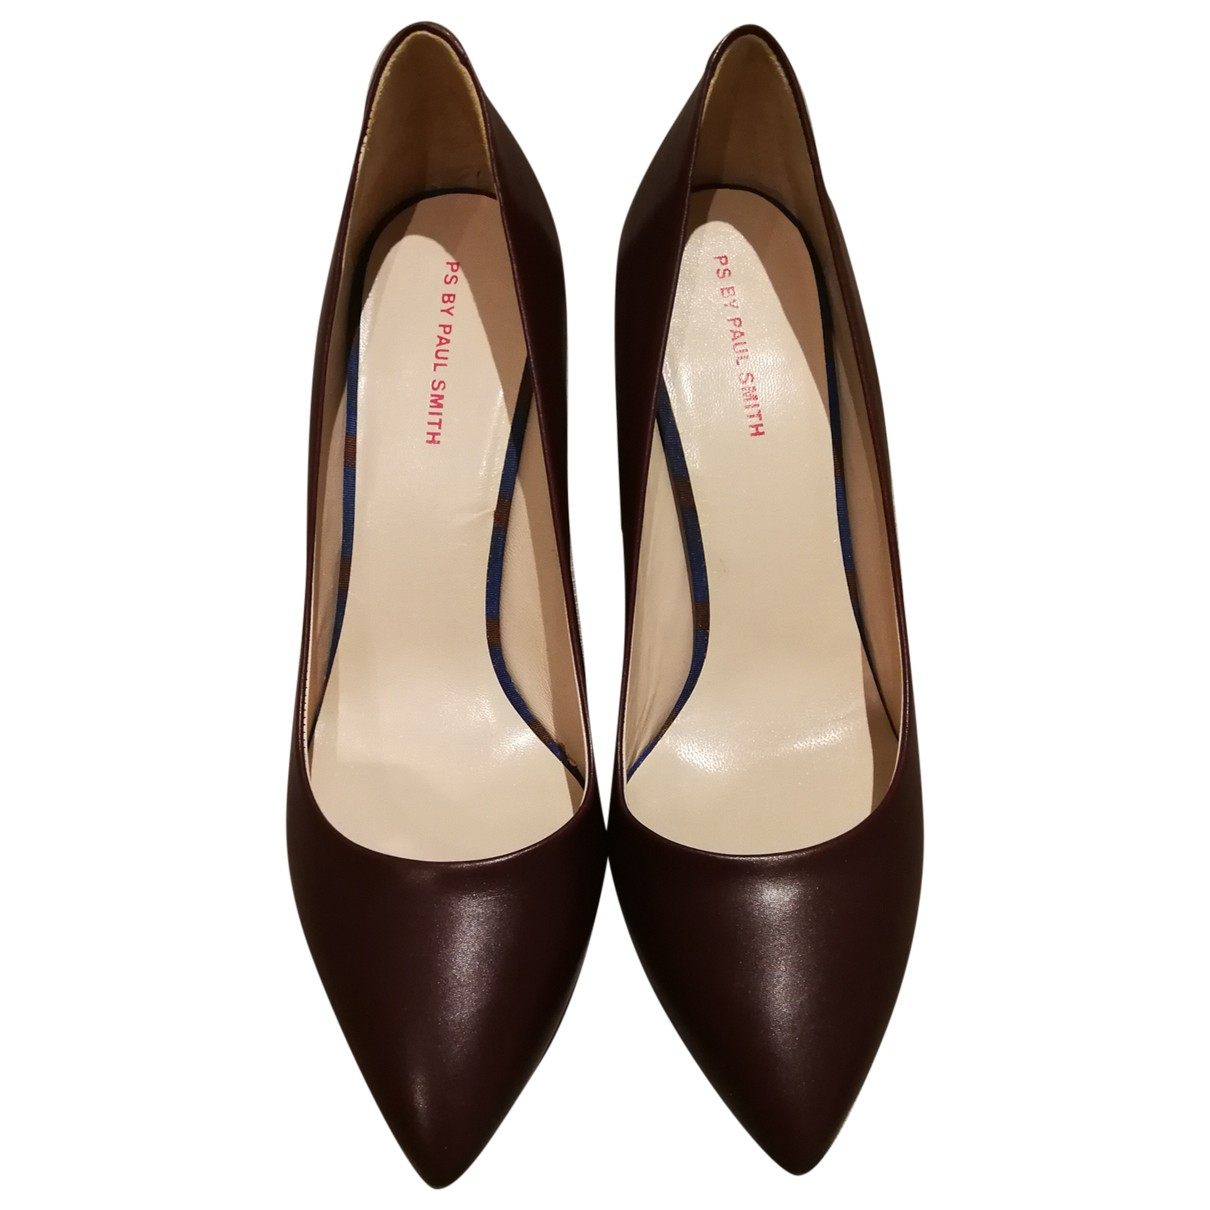 Tacones de Cuero Paul Smith